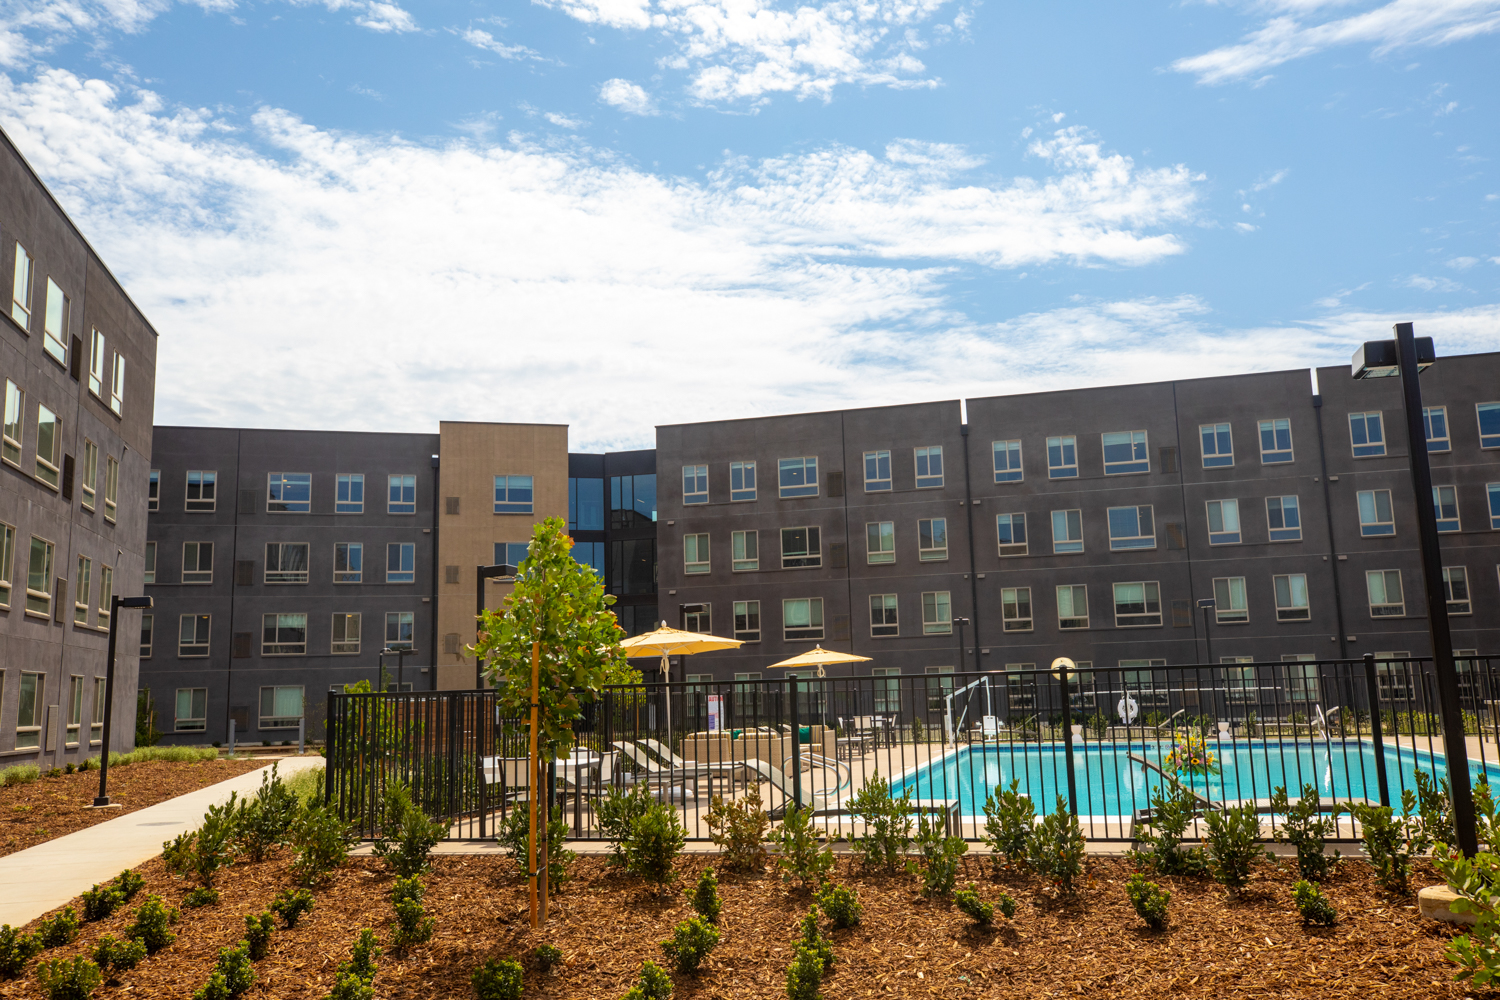 Hornet Commons, Sac State's newest student housing complex, features plenty of desirable amenities. (Sacramento State/Andrea Price)